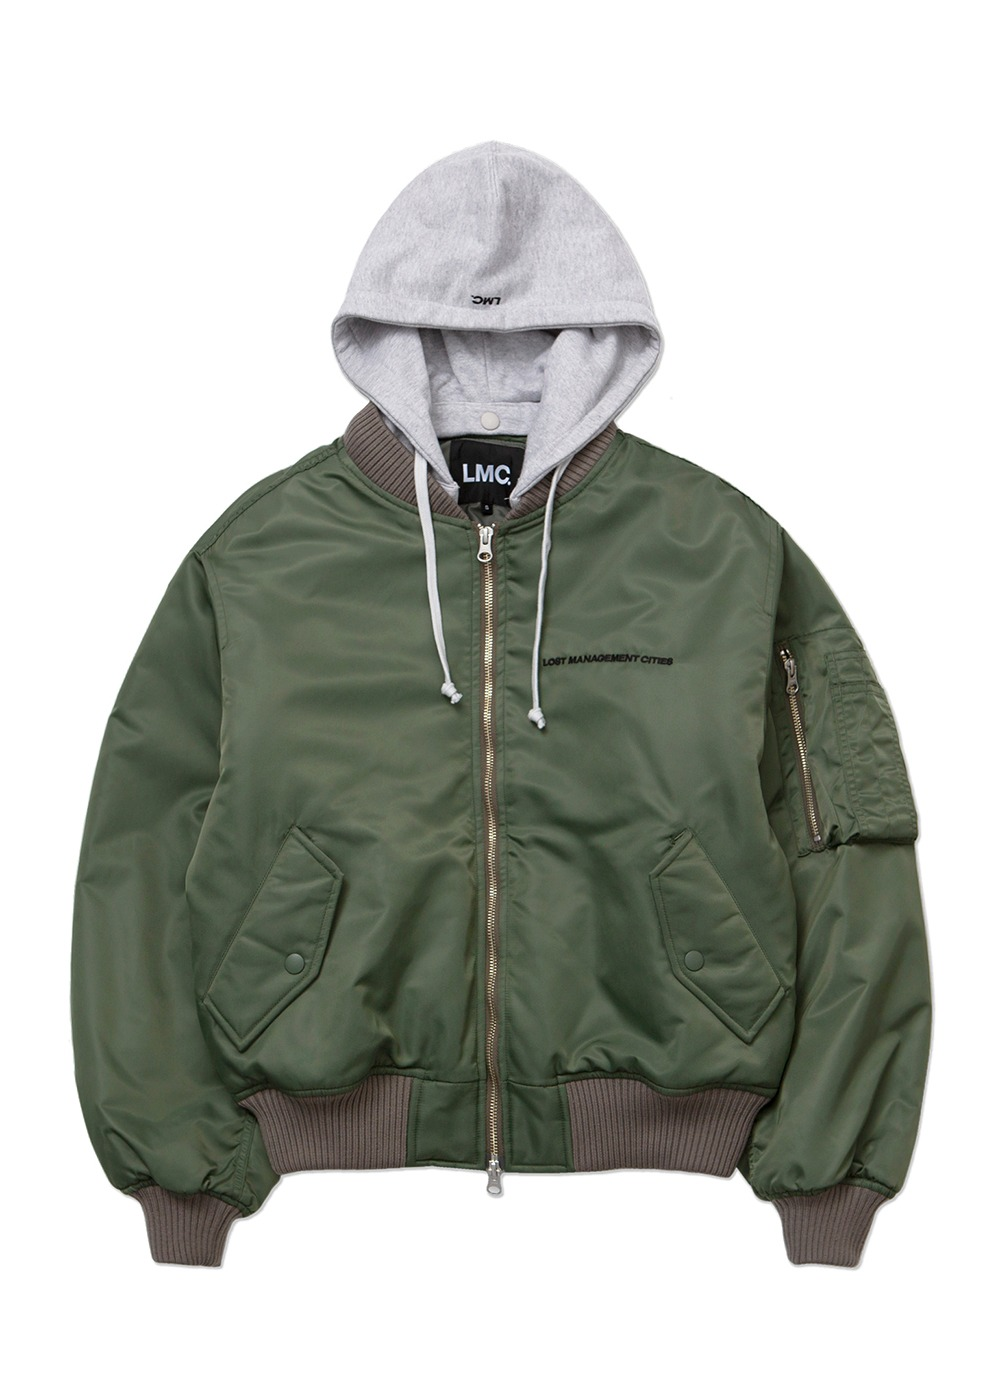 LMC MA-1 HOODED JACKET olive